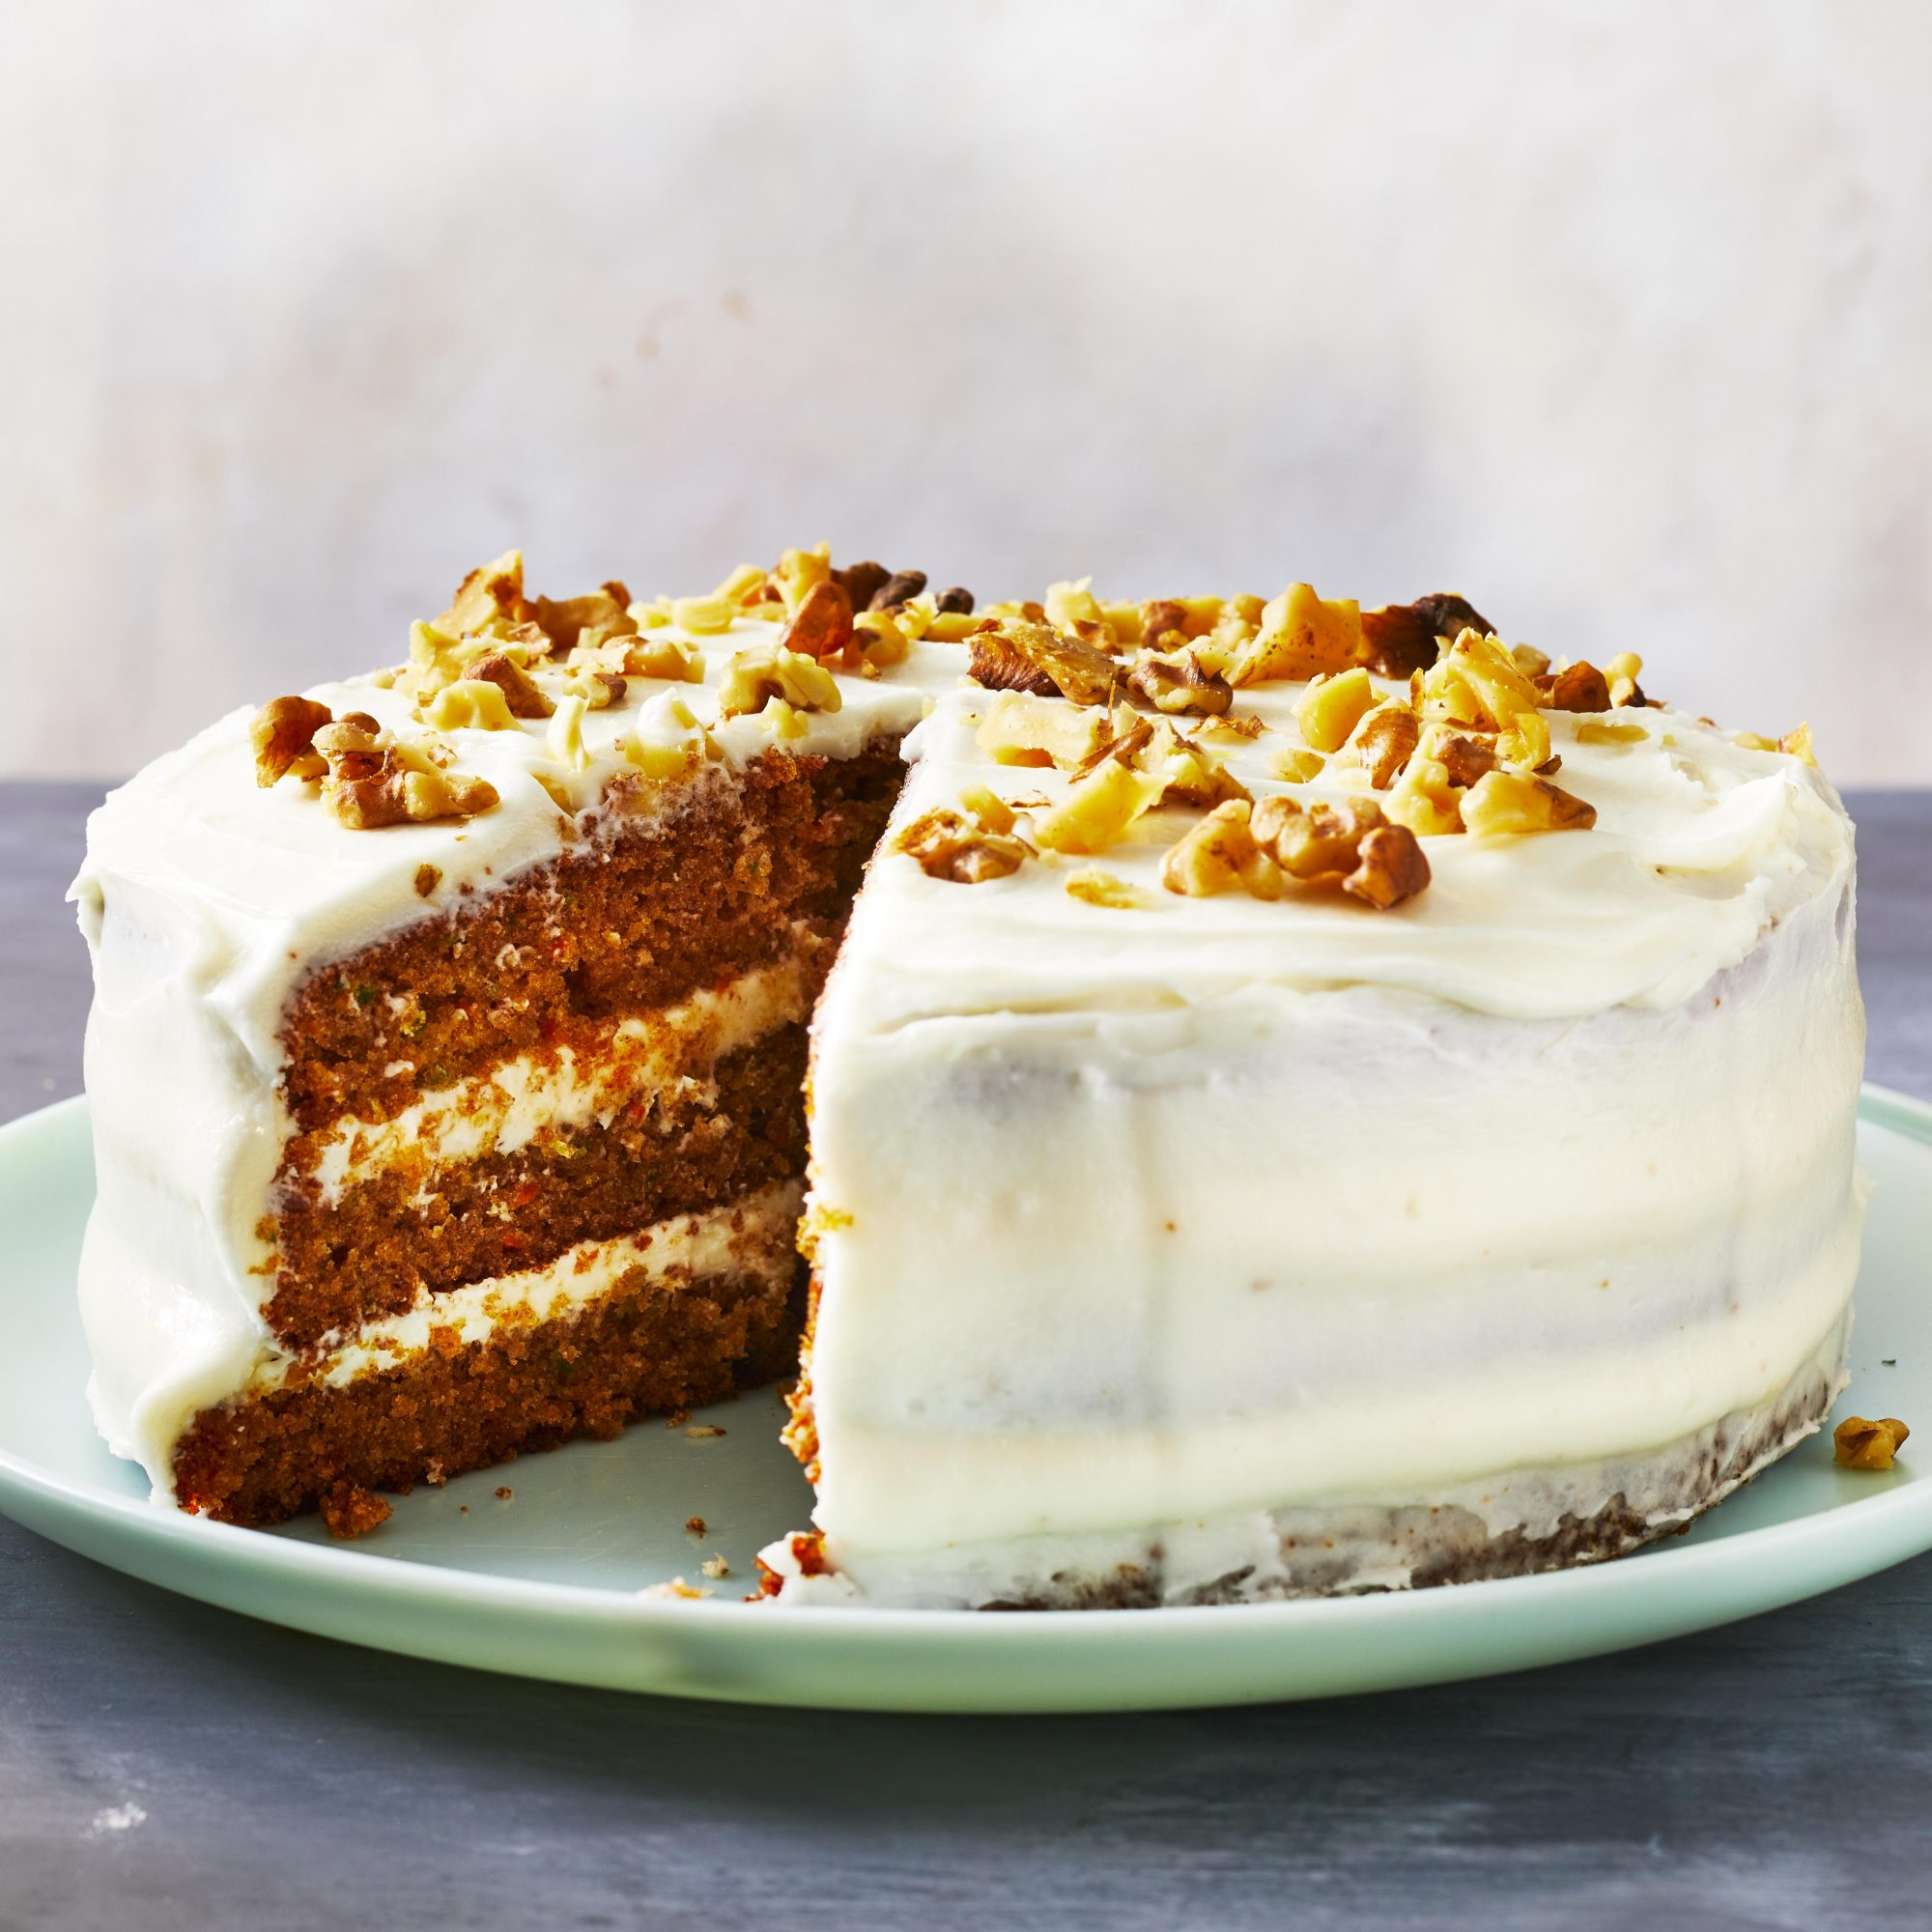 three-layered carrot and zucchini cake on a plate